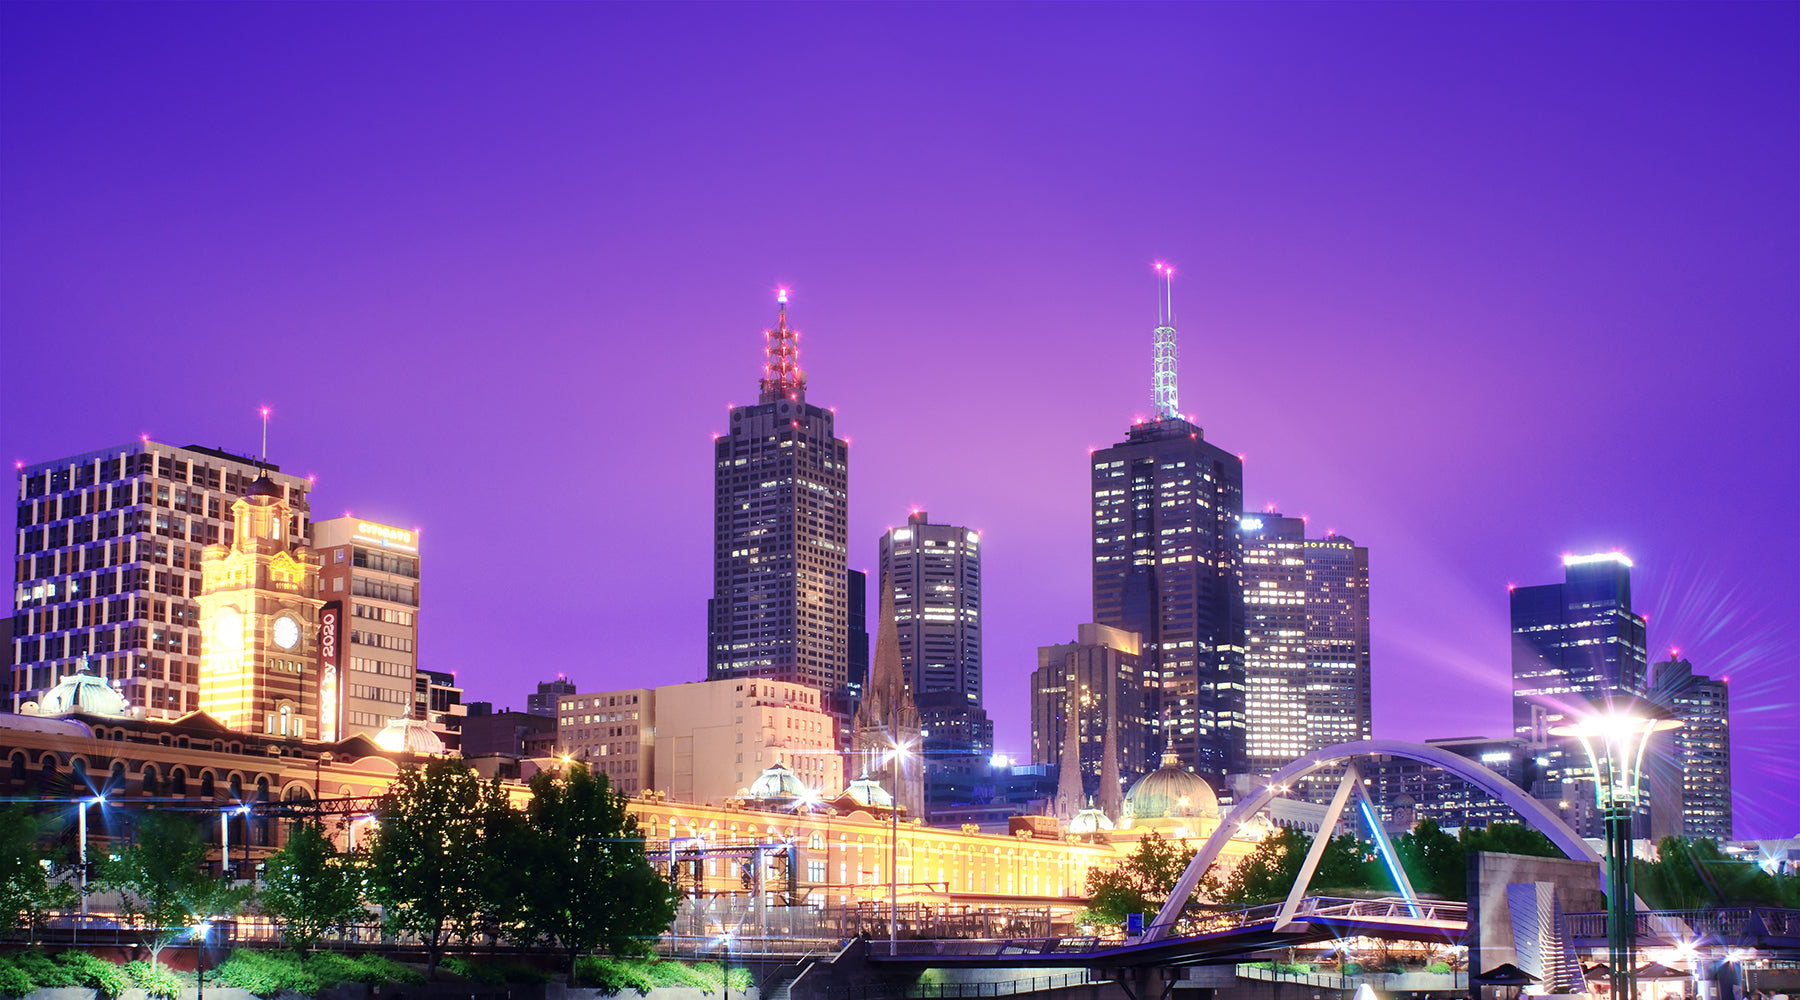 Photograph of Melbourne at night, prior to COVID-19 | Nikki Darling Australia